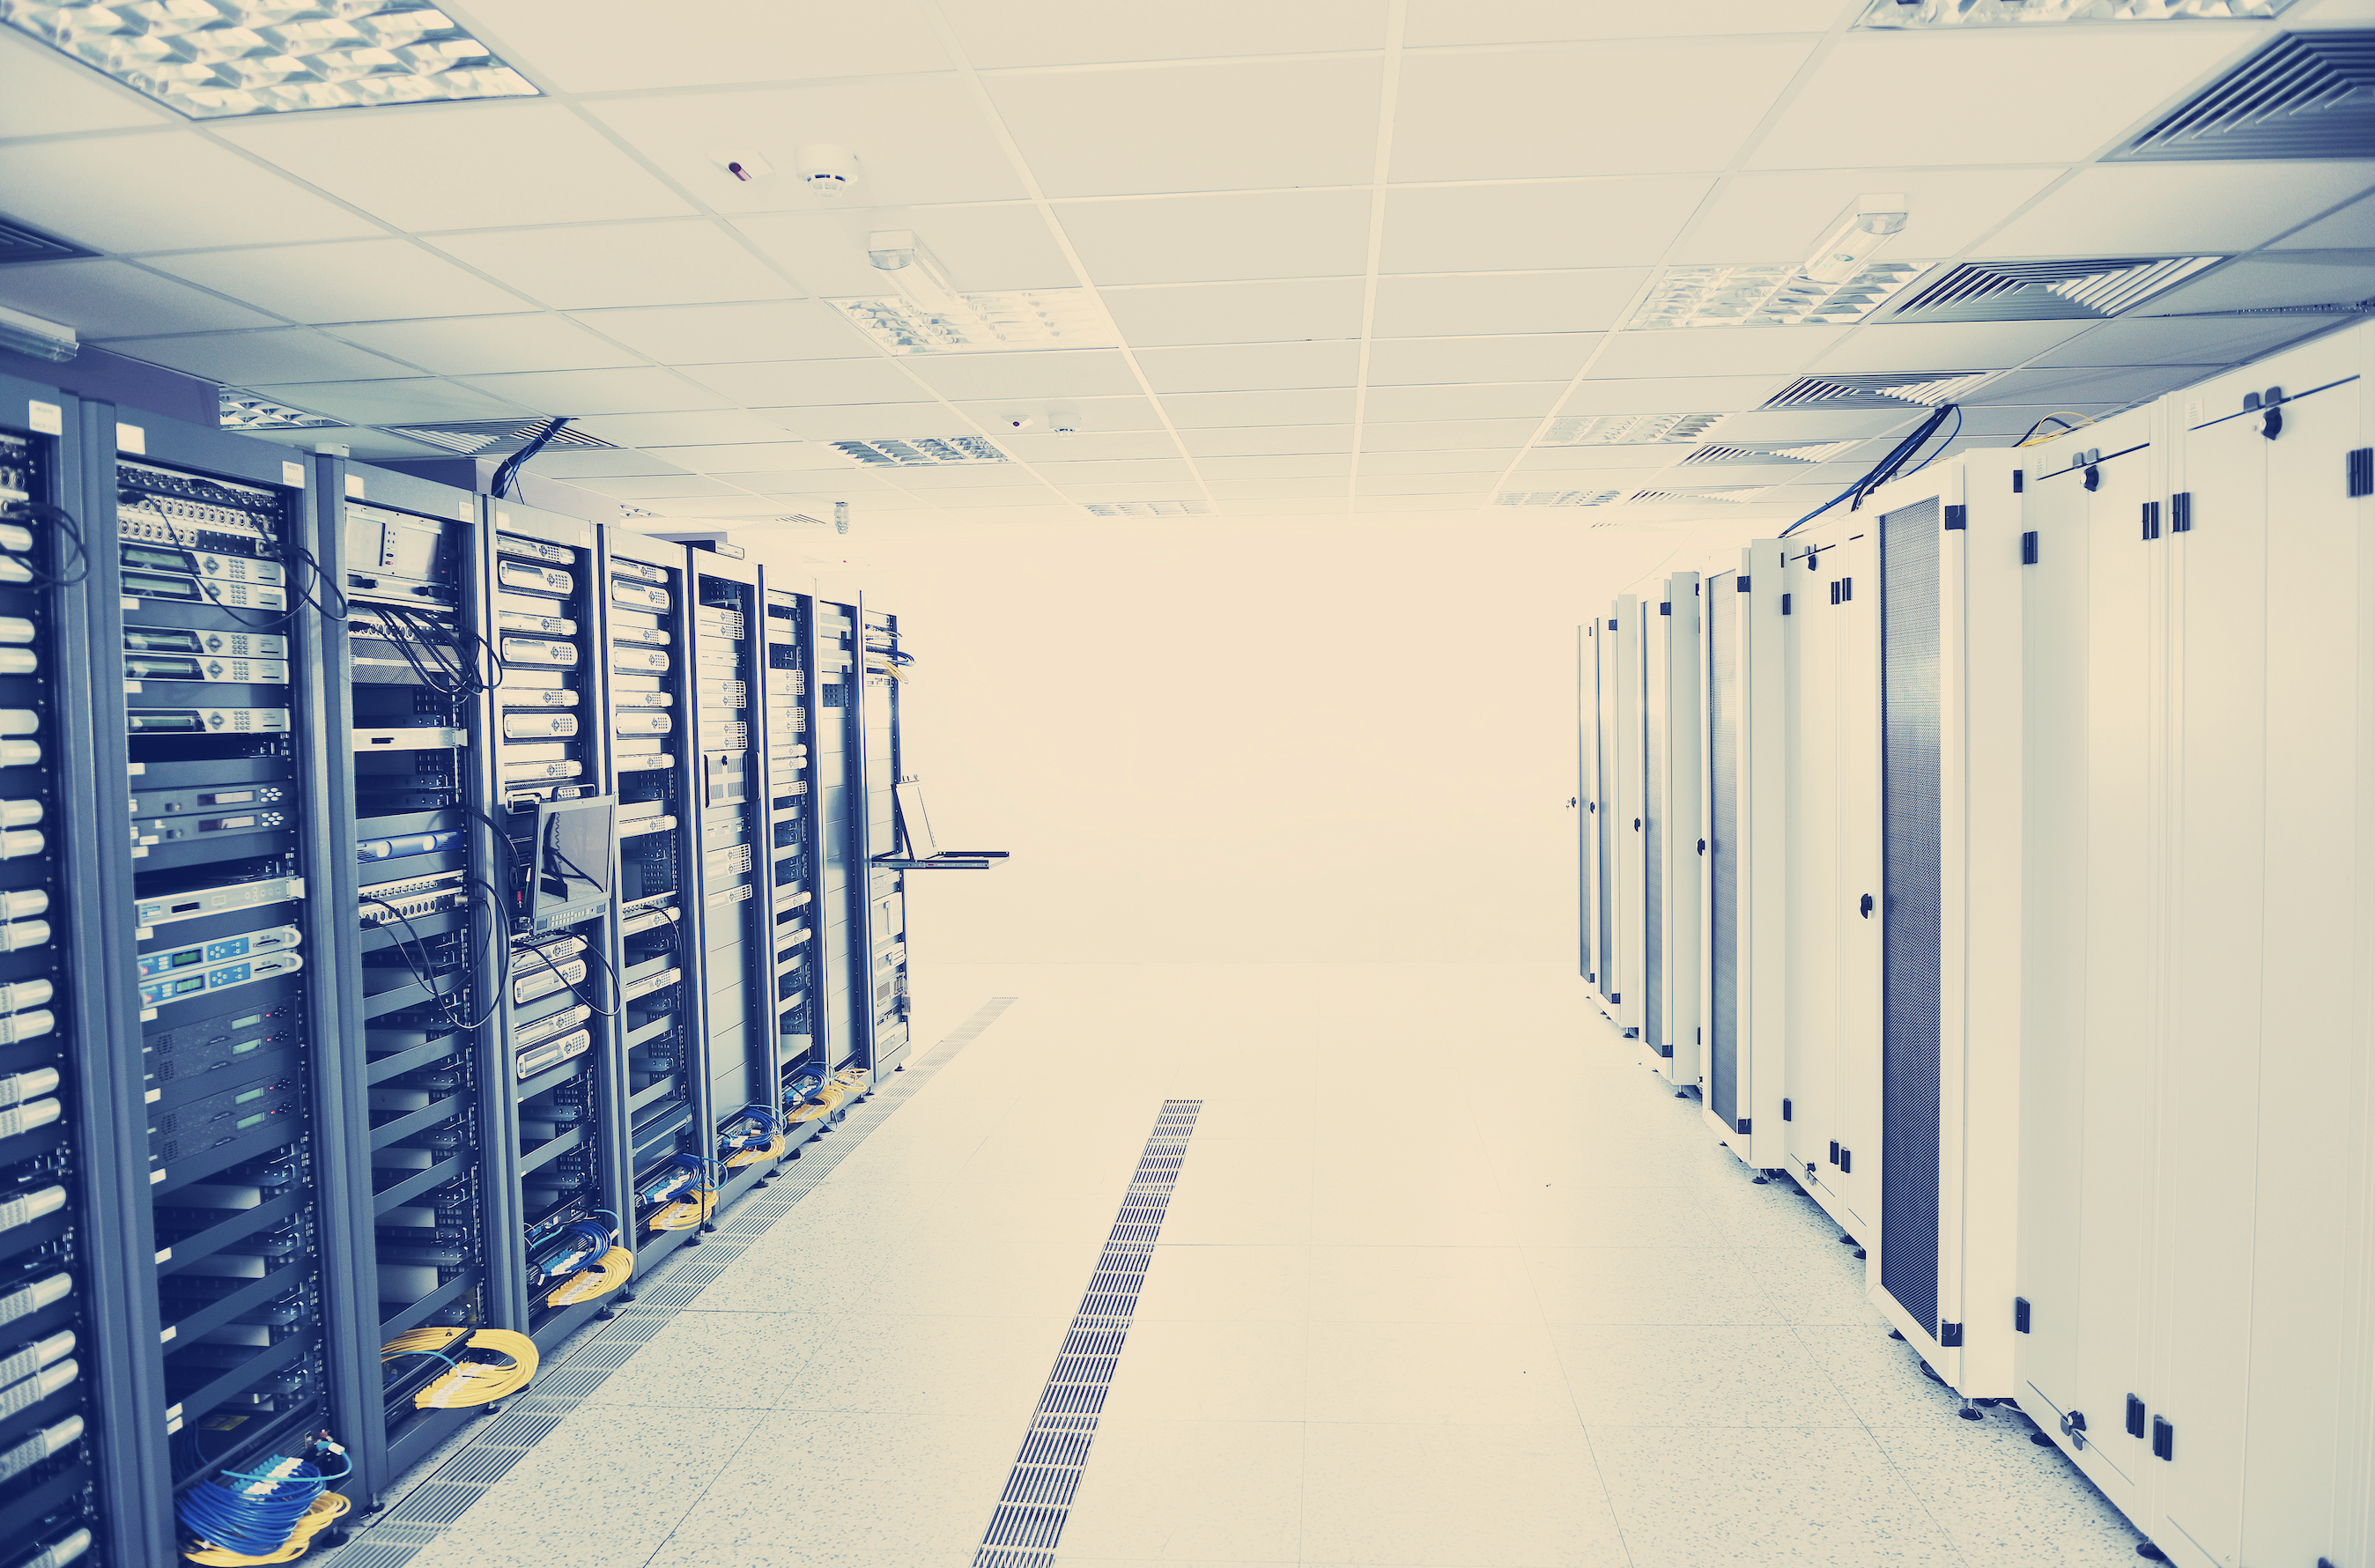 Tips to Prevent Data Loss in Your RAID-based Storage Array